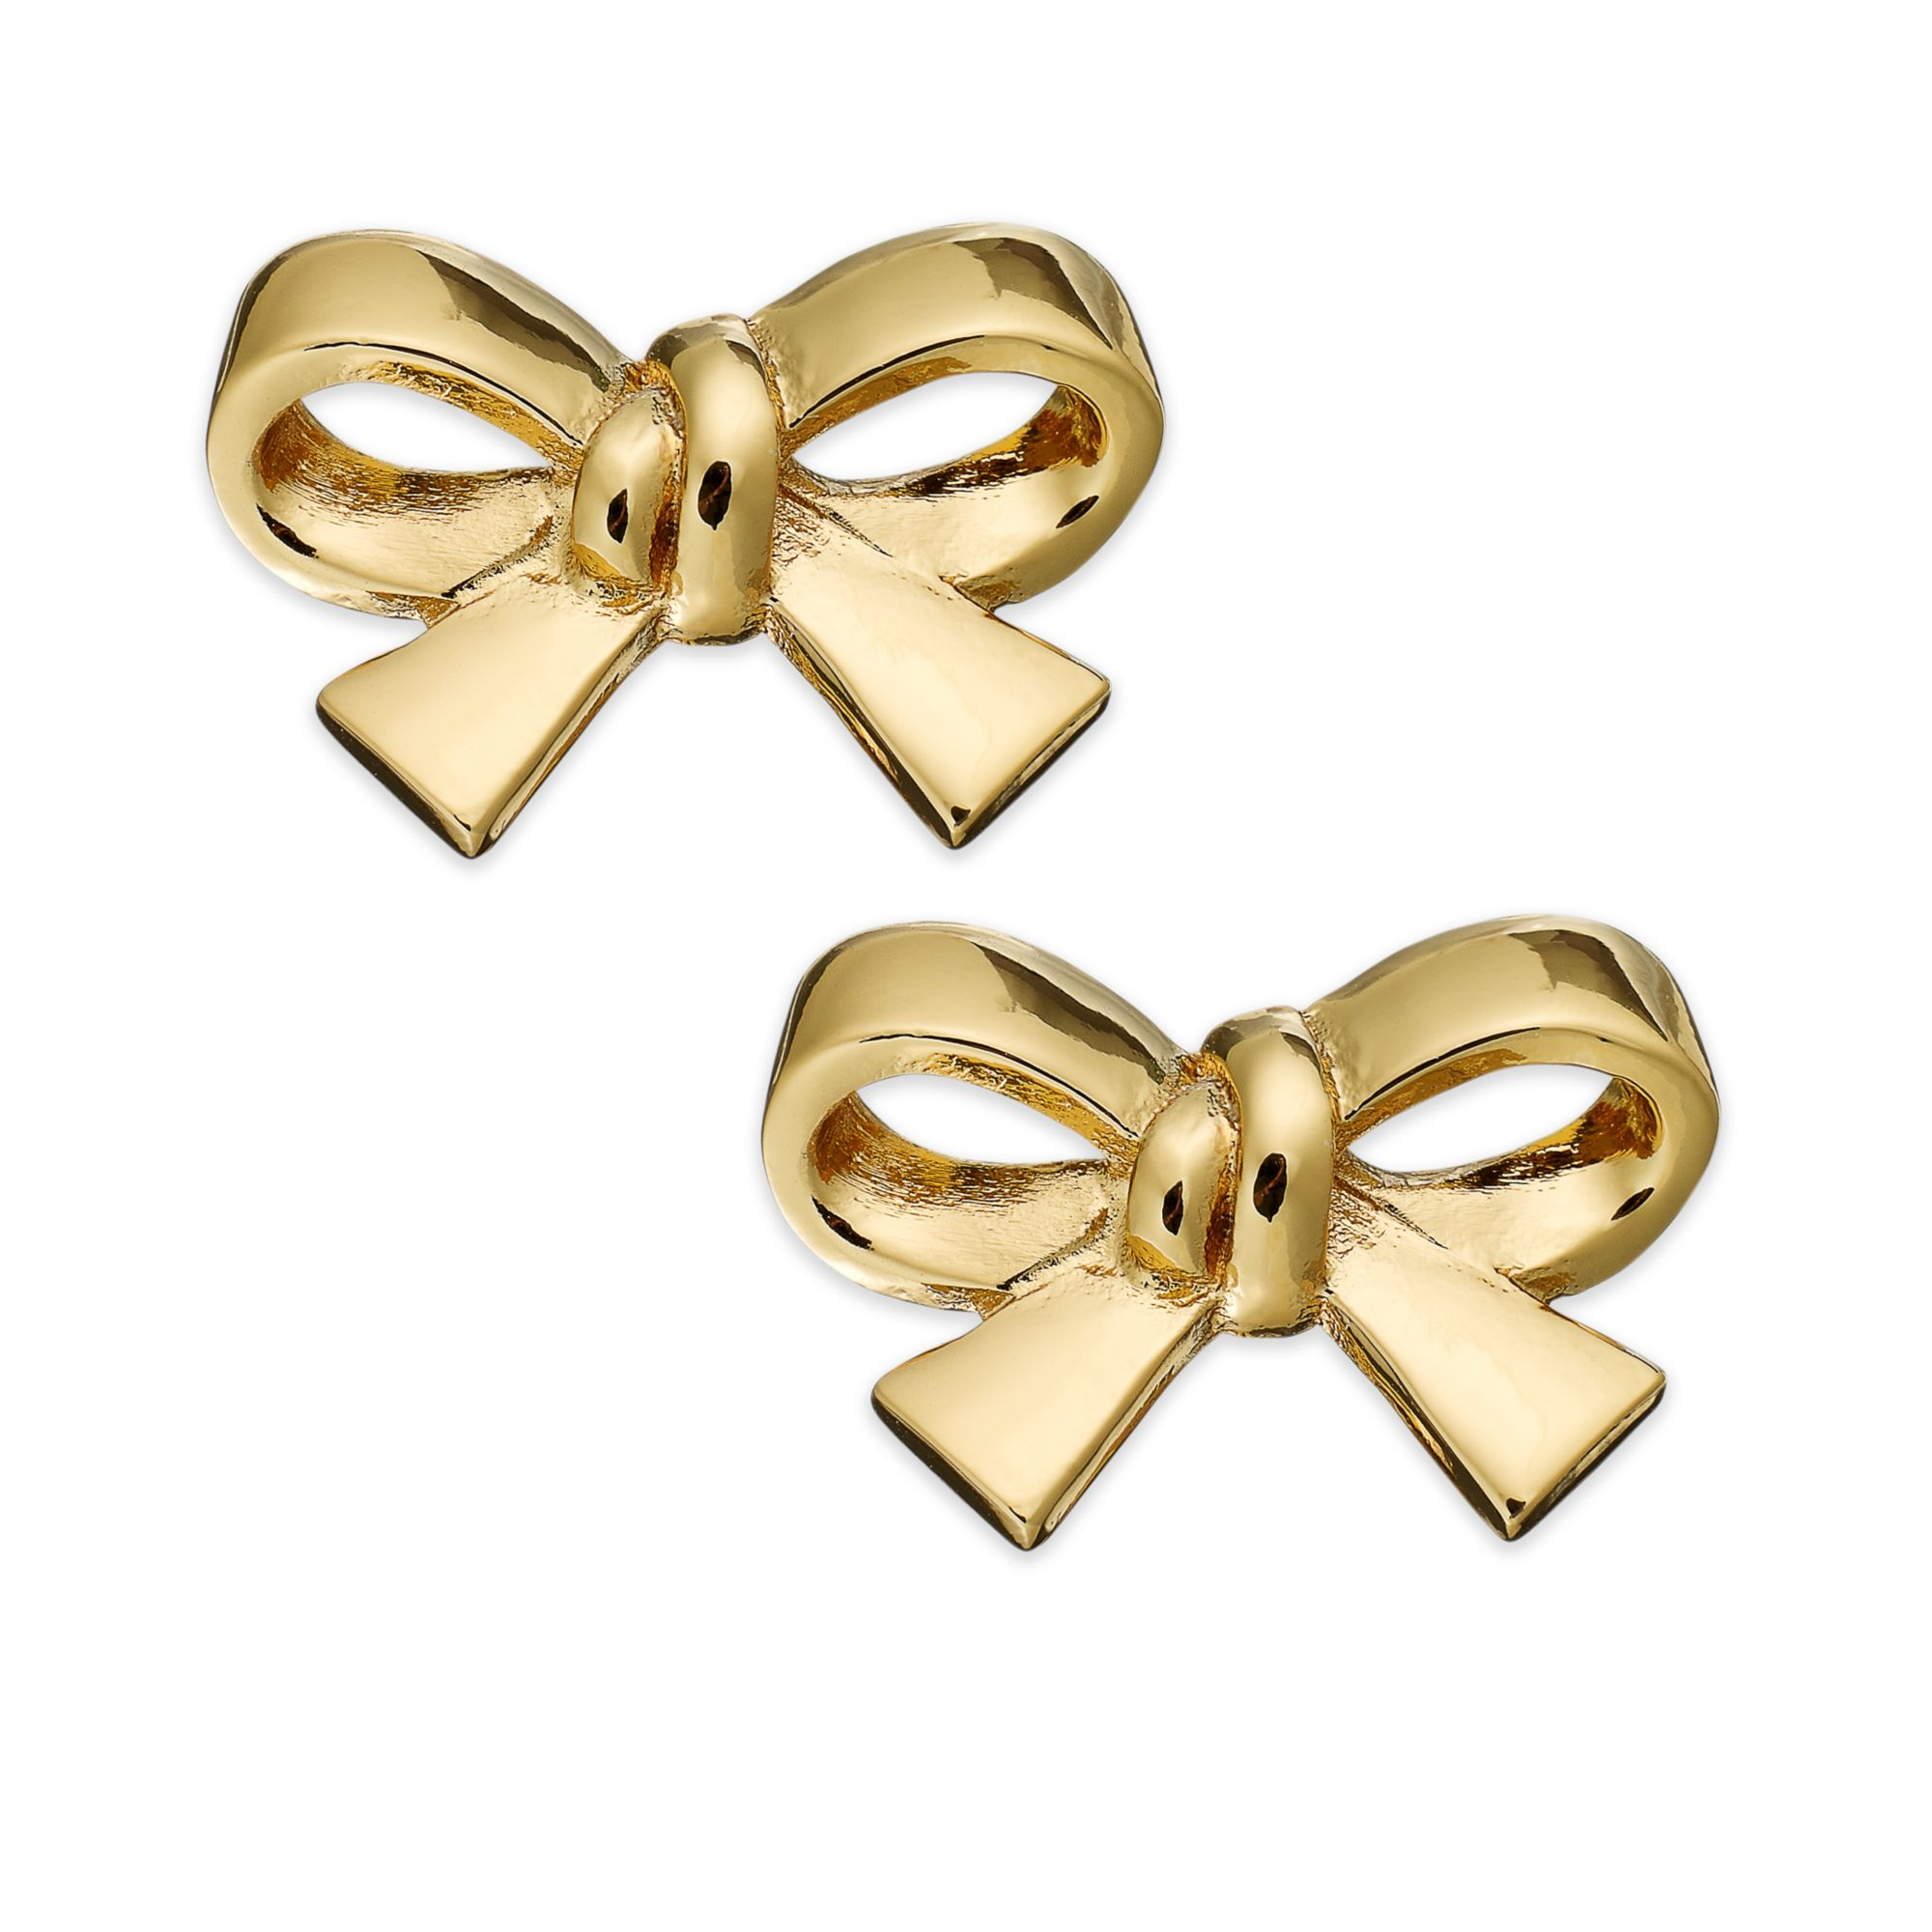 kate spade clip on earrings kate spade gold tone bow clip on earrings in gold no 9001